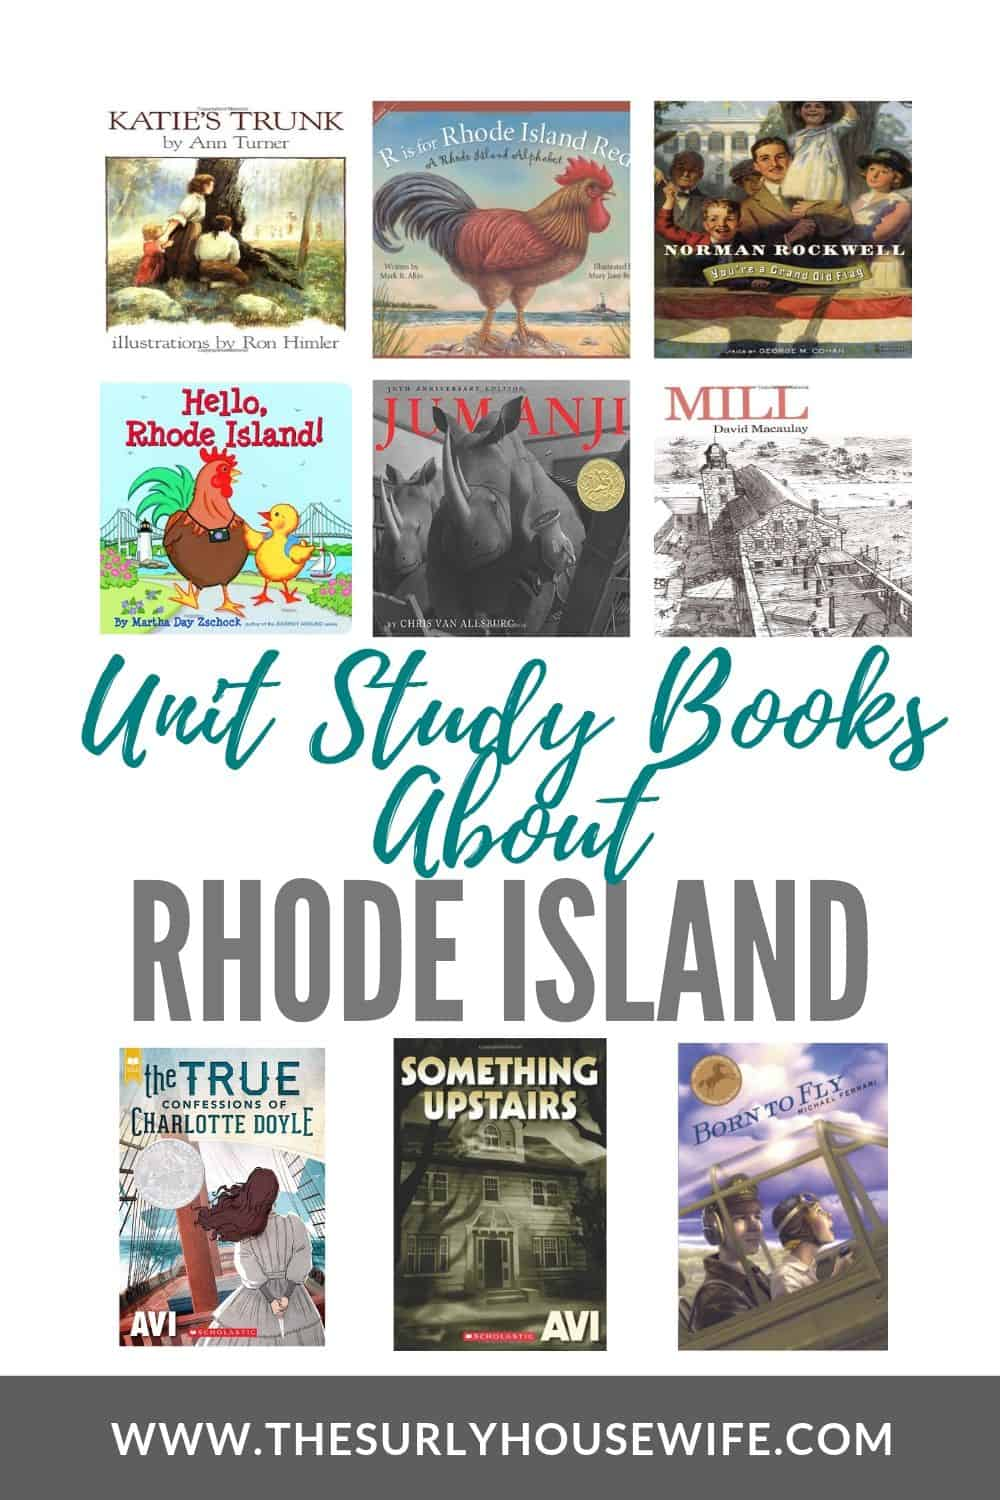 Looking for children's books about Rhode Island? Doing a 50 states study? This post includes 20 books for studying Rhode Island, the Ocean State! It features picture books, chapter books, young adult literature, and books about Rhode Island history.